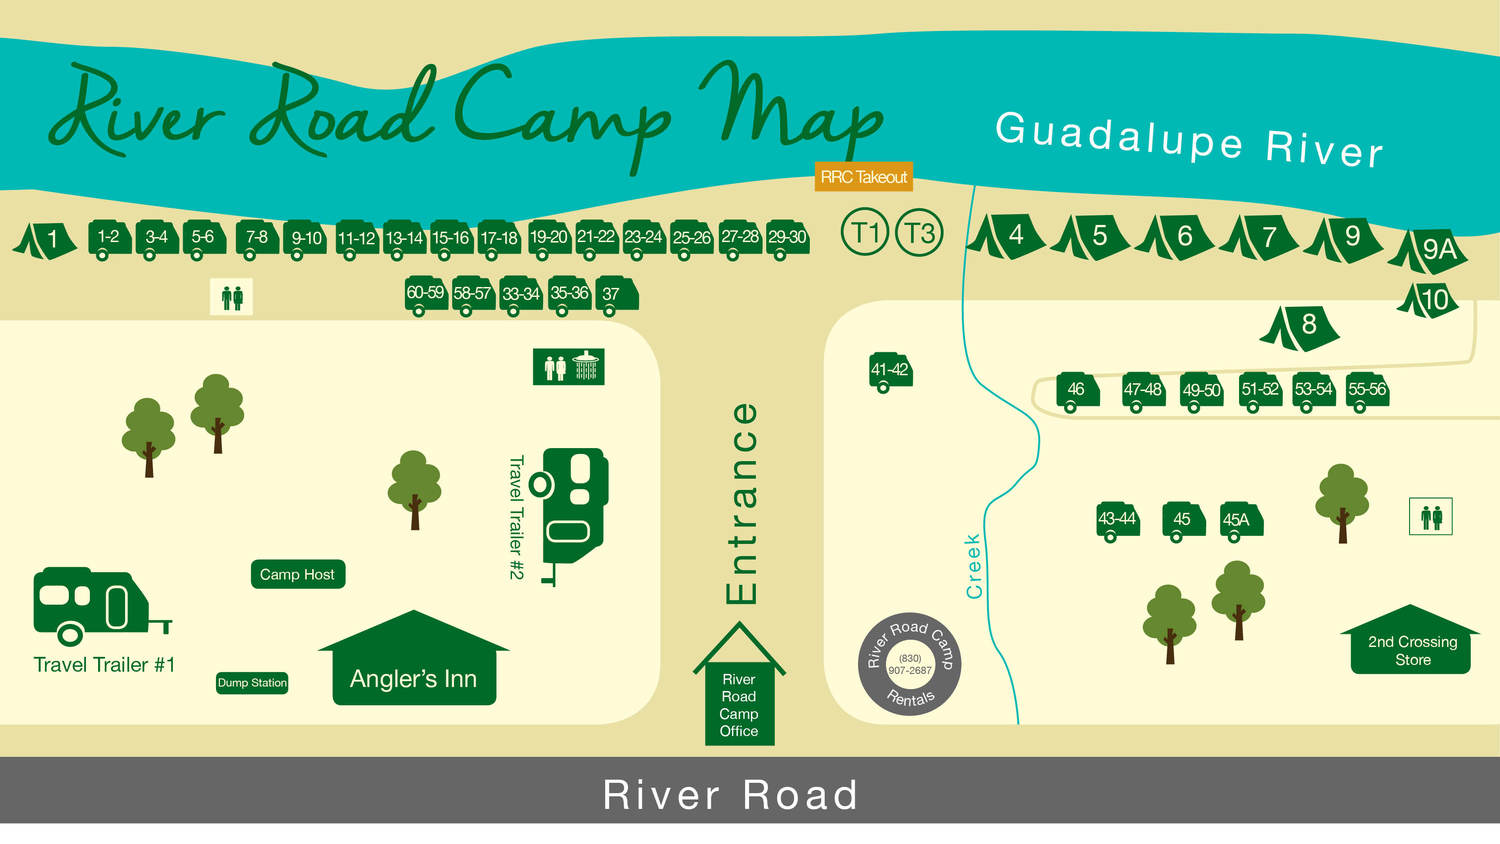 New Braunfels Camping >> Camping River Road Camp